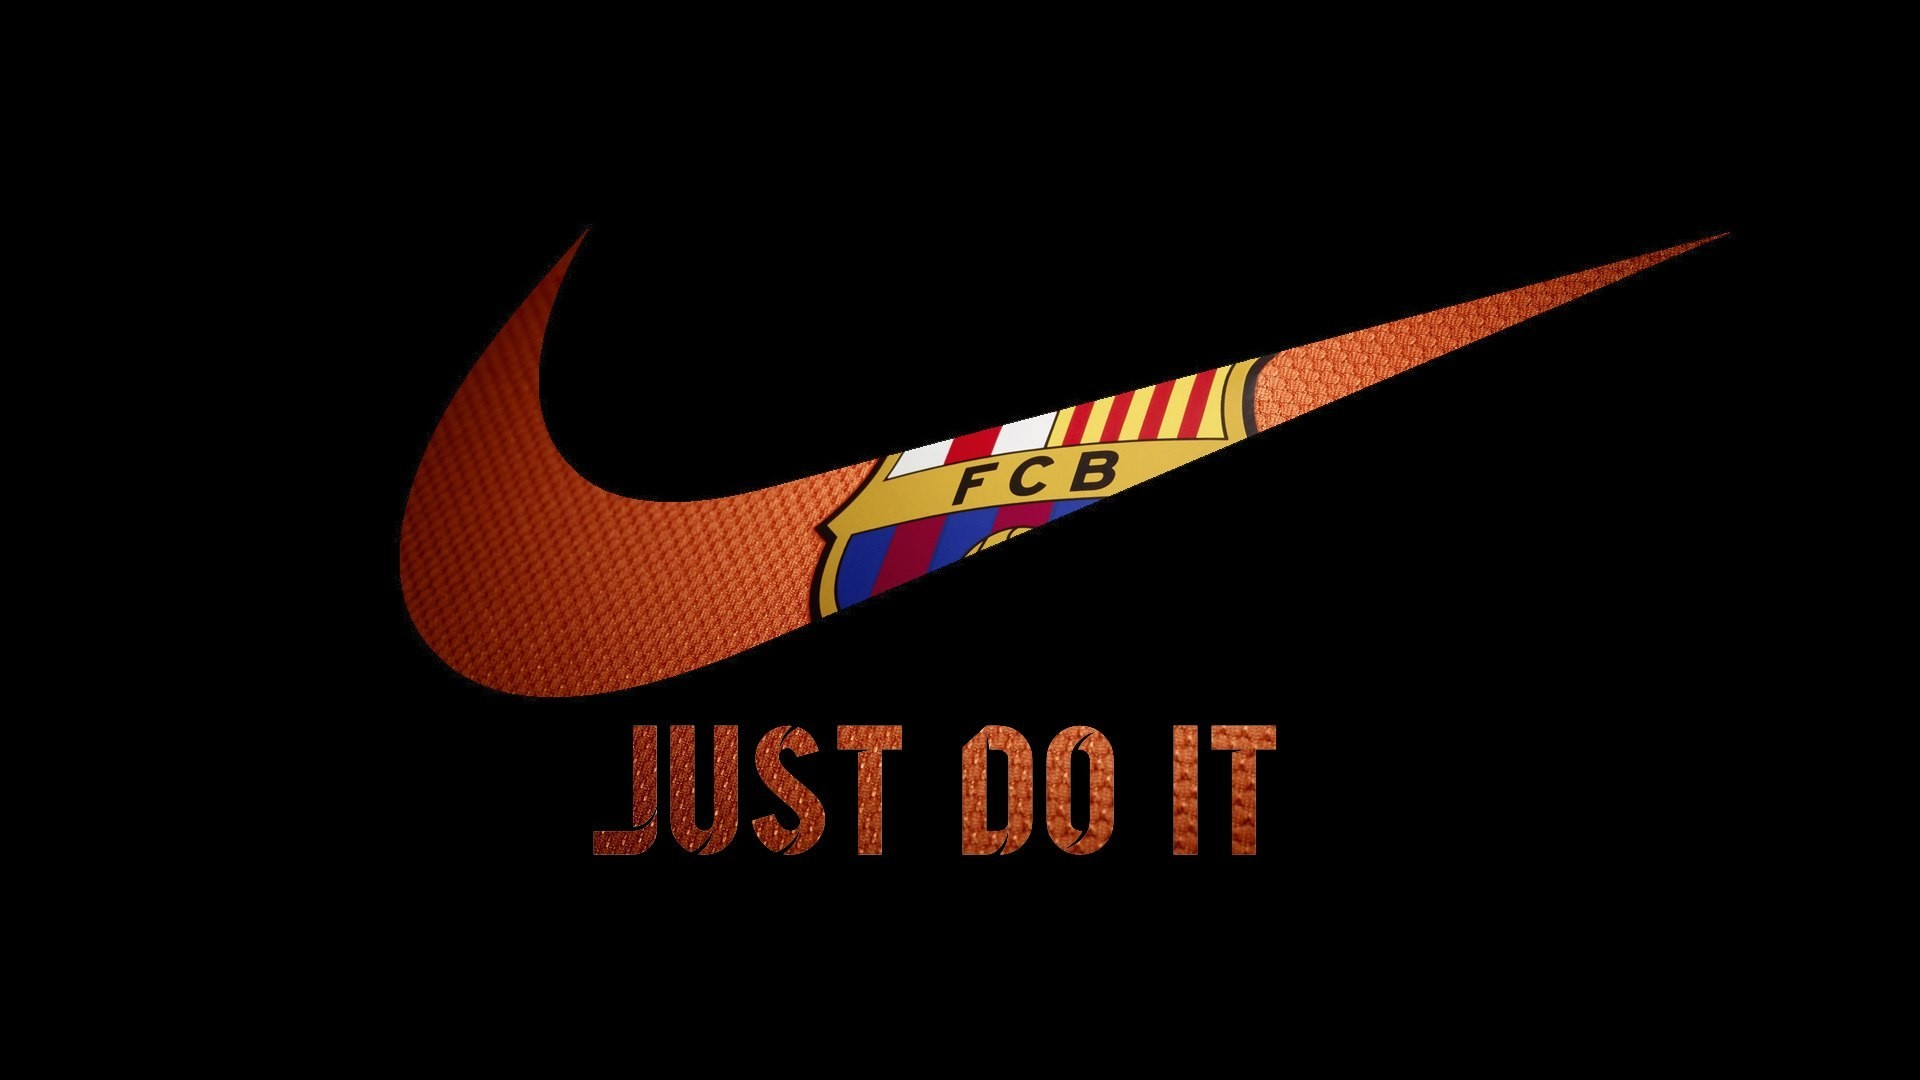 Products – Nike FC Barcelona Wallpaper